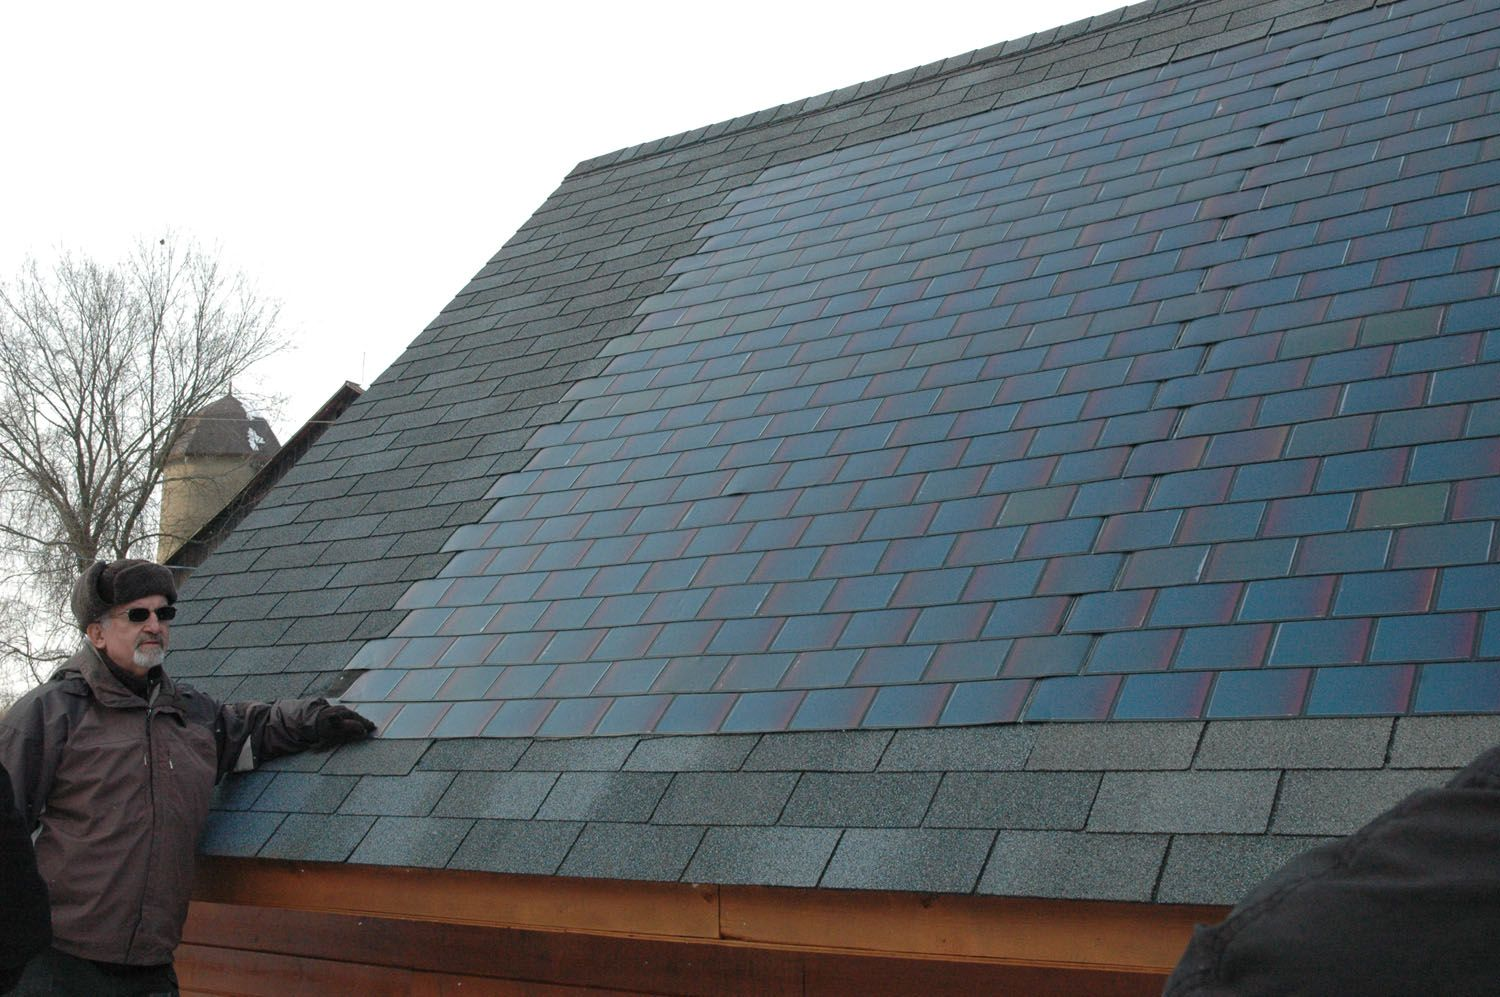 Thanks To Advances In Solar Technology Over The Last Decade Or So There Are Now Alternatives To Traditional Solar Pa Solar Panel Shingles Solar Shingles Solar